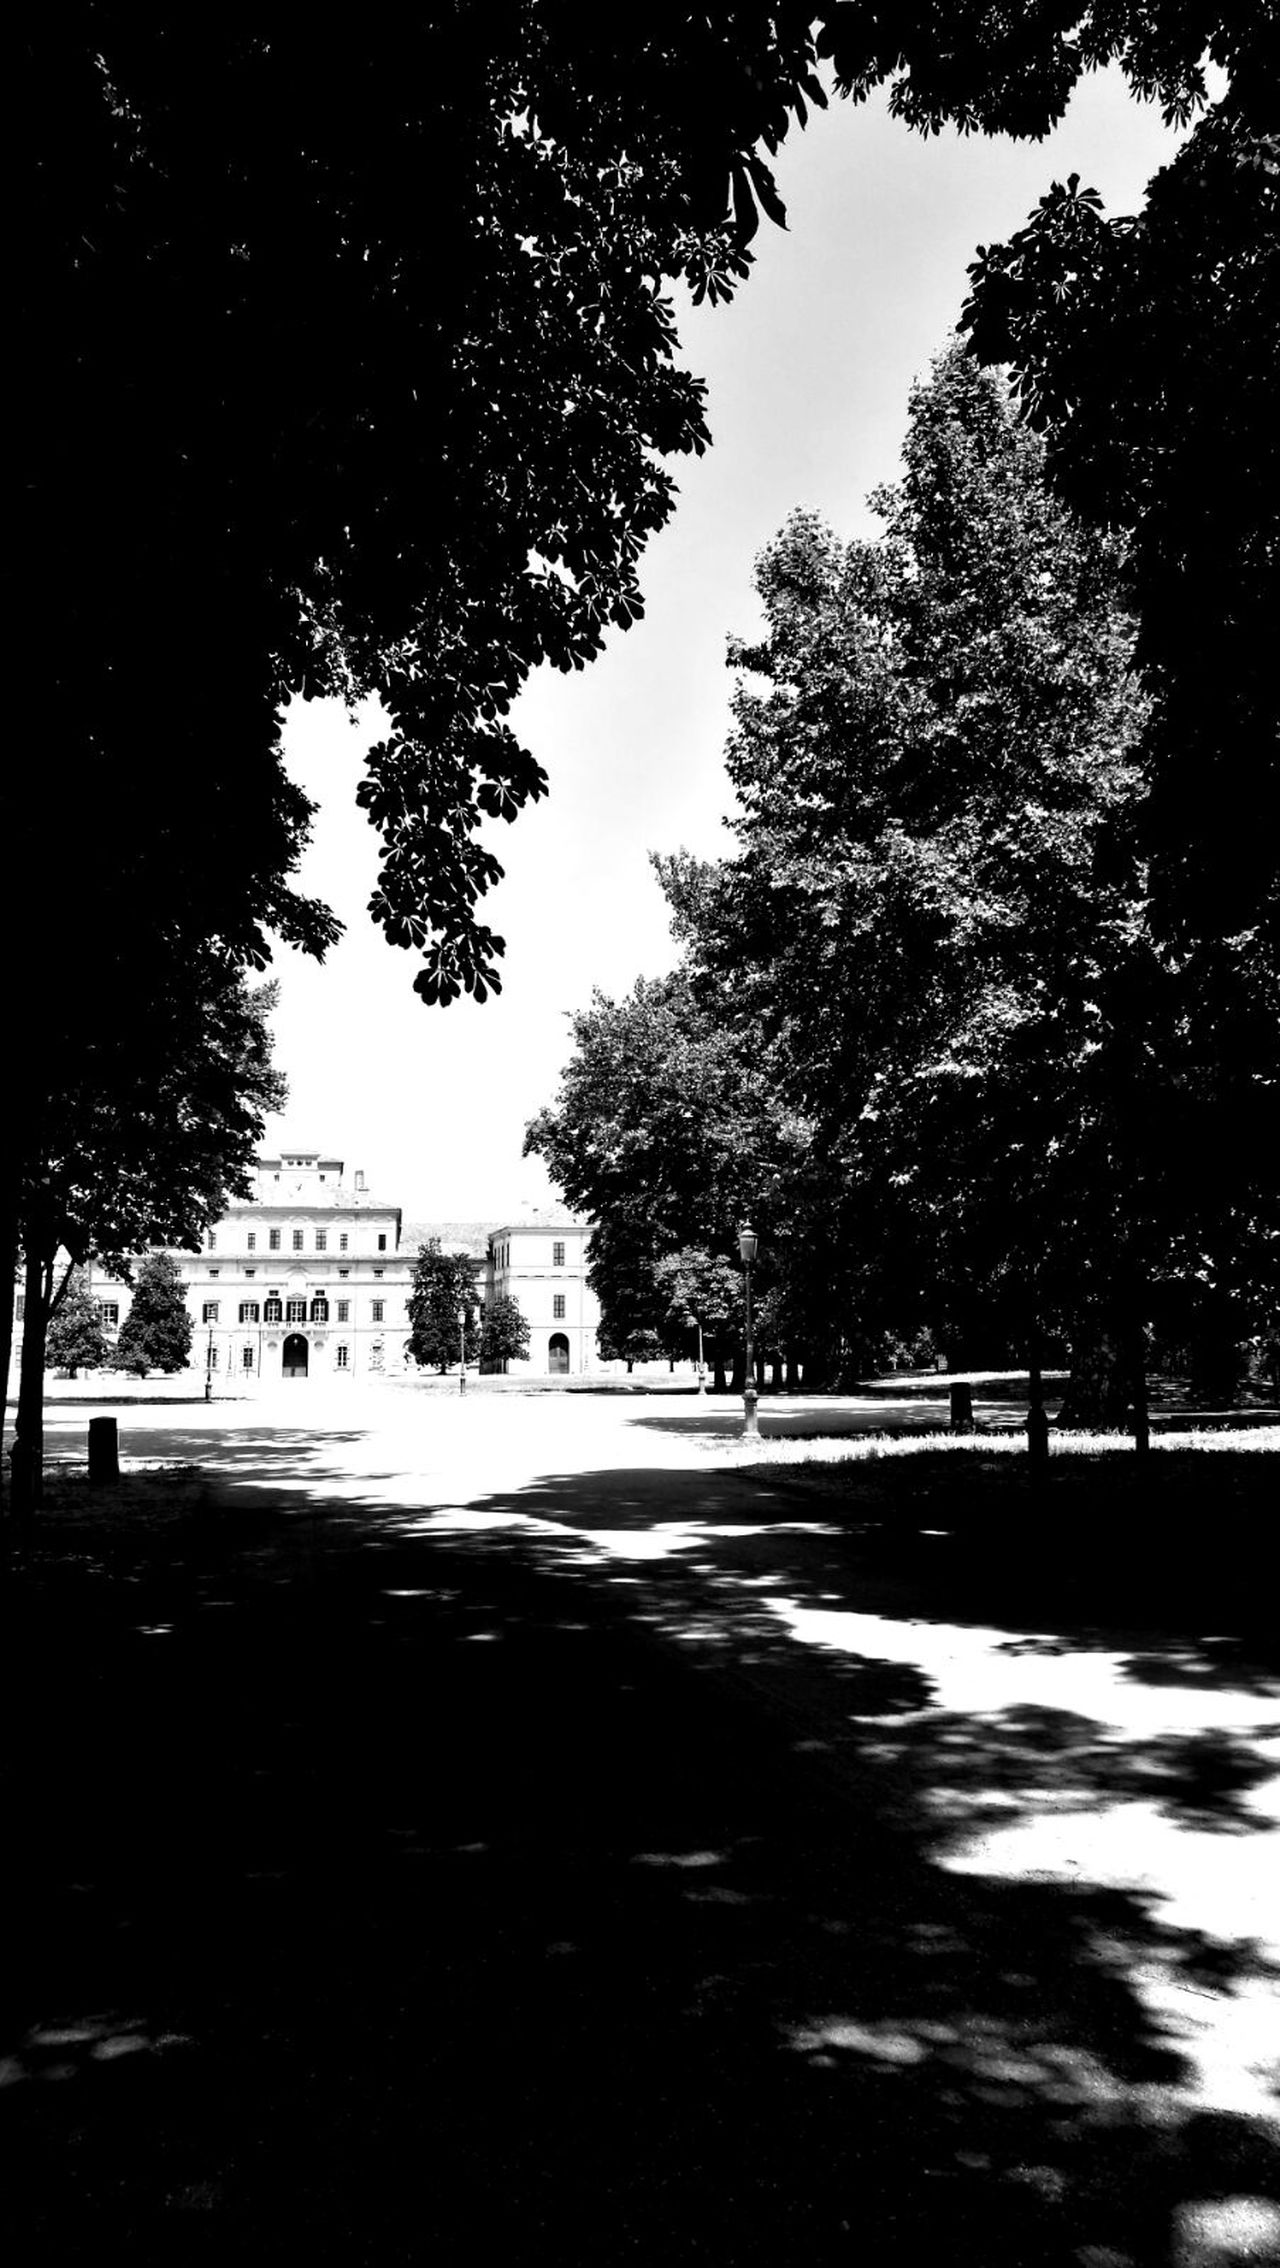 Parma, Parco Ducale Parma Parco Ducale Italy Emiliaromagna HuaweiP9 Huawei P9 Bw B/w Leica Leica Lens